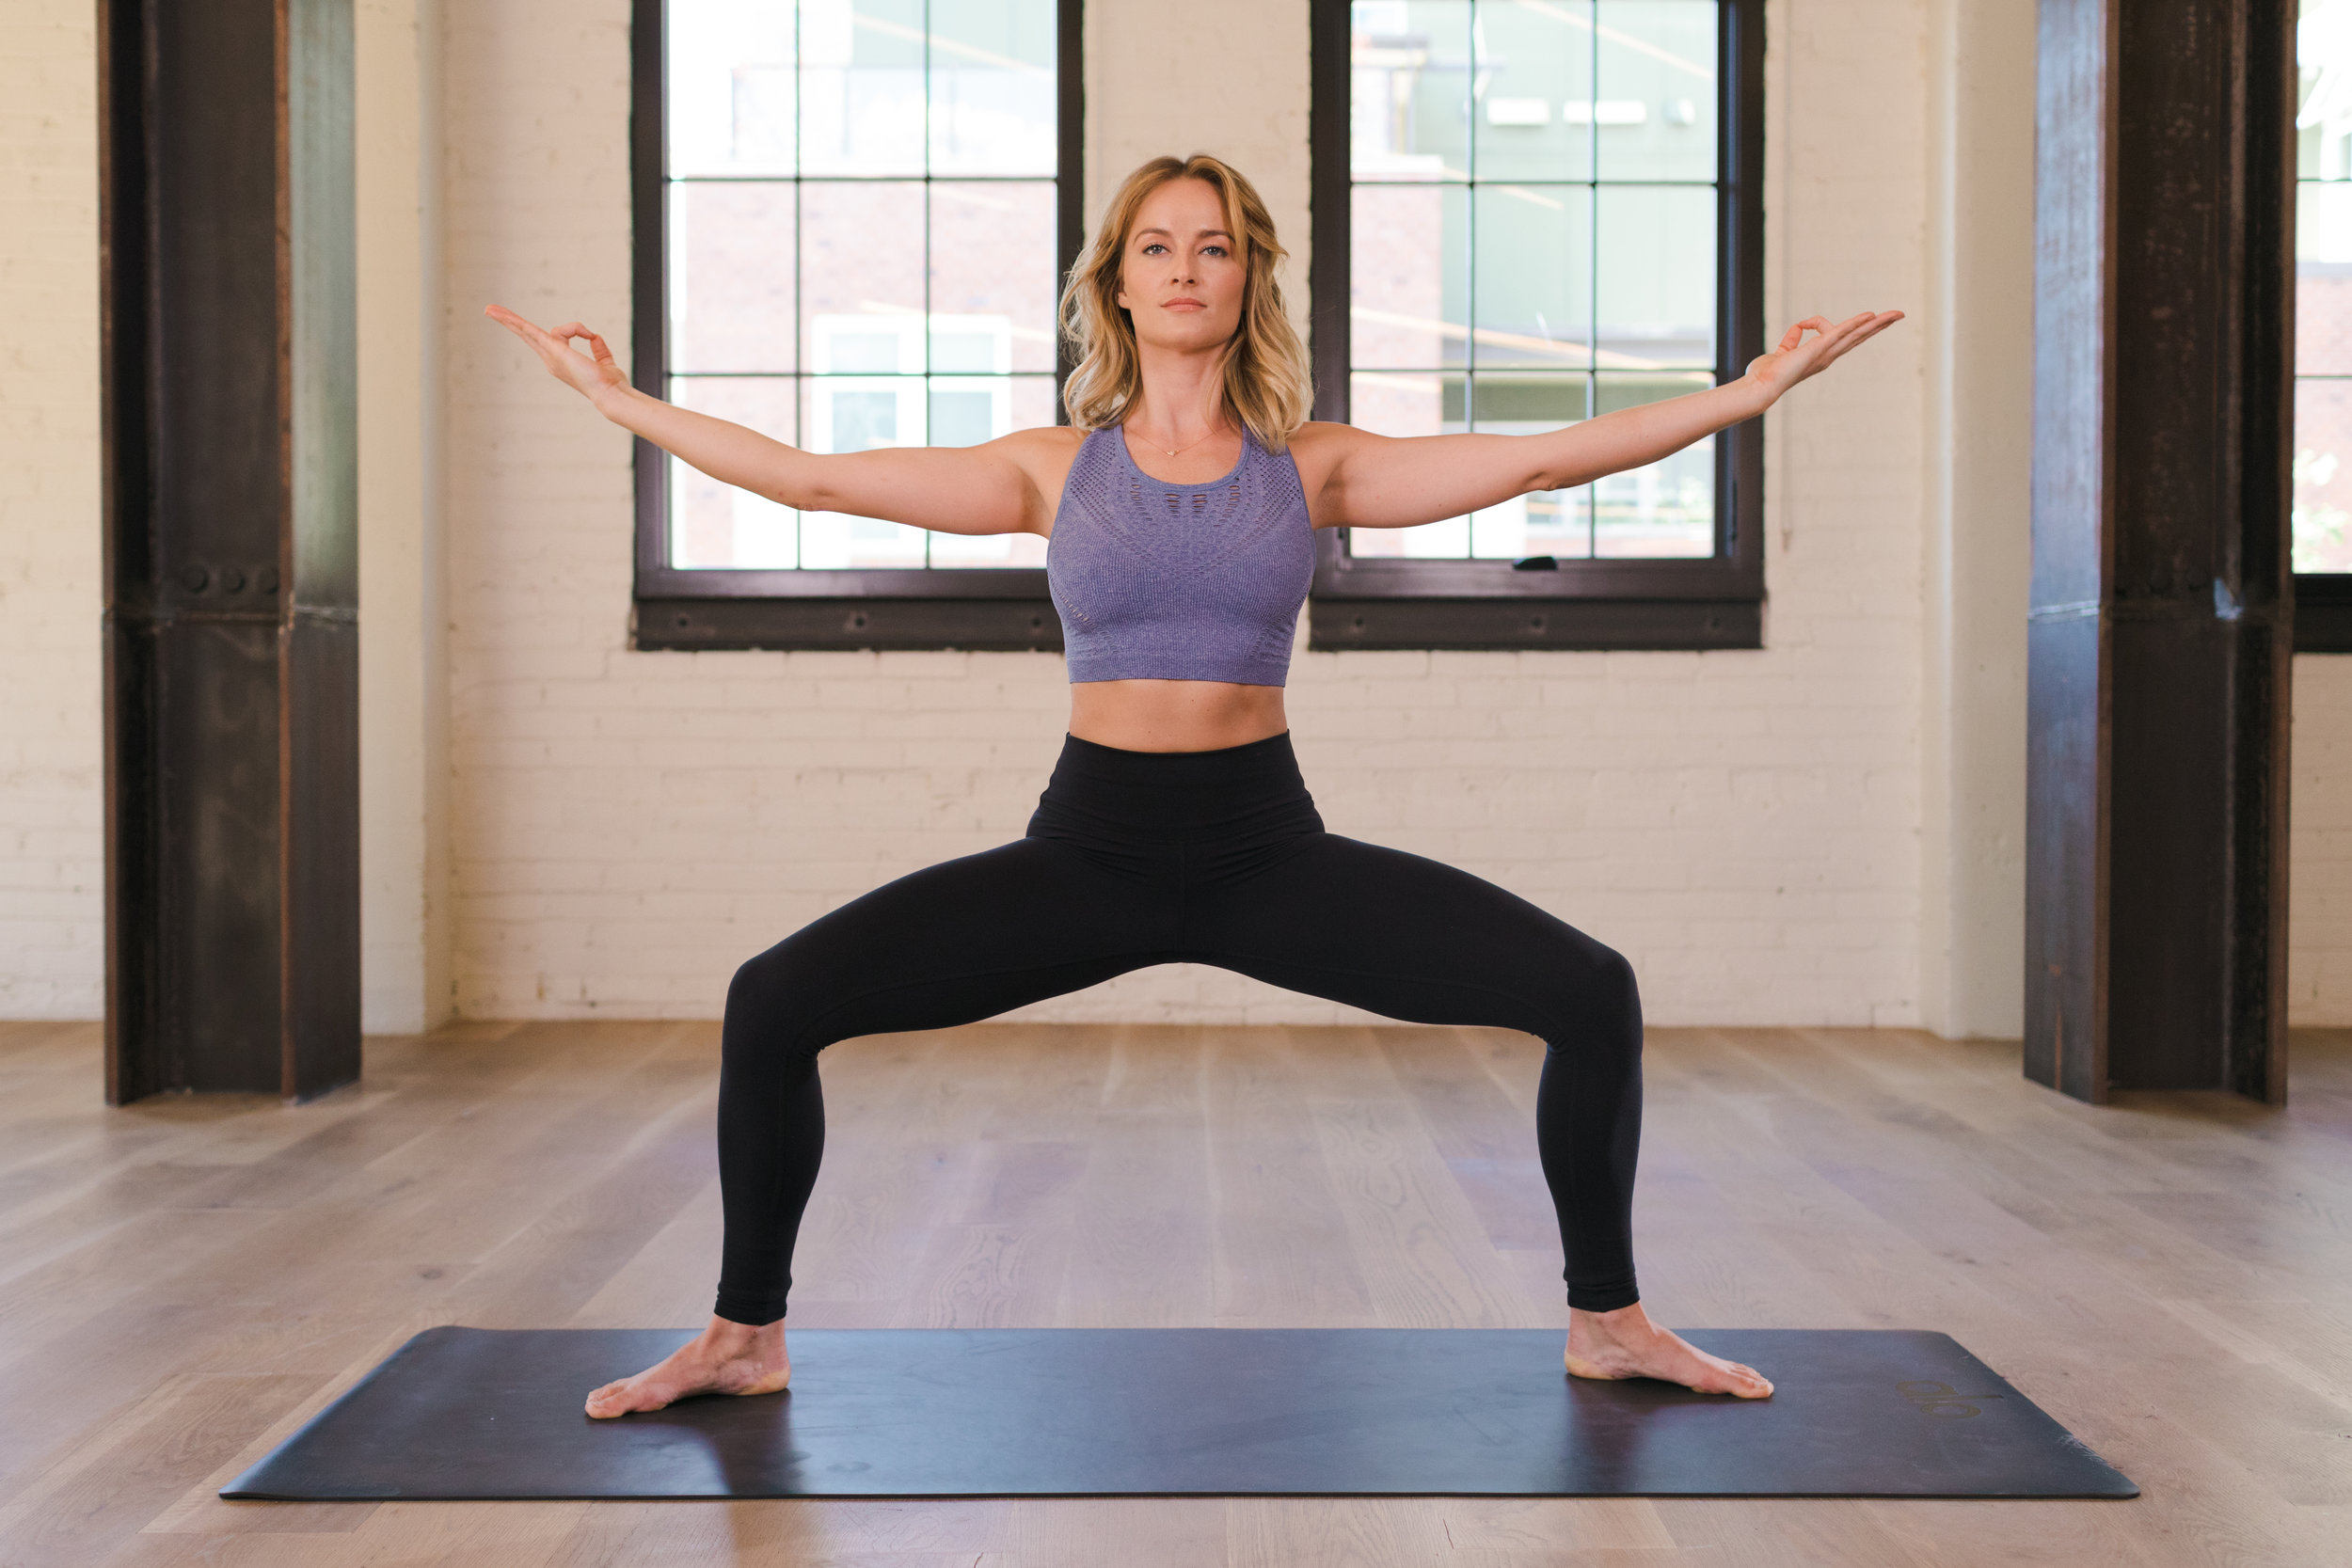 WAKE UP - Freshen up your morning with this 15-minute vinyasa flow. This class will wake up your whole body with active stretches, heated movement, and energizing breath of fire.